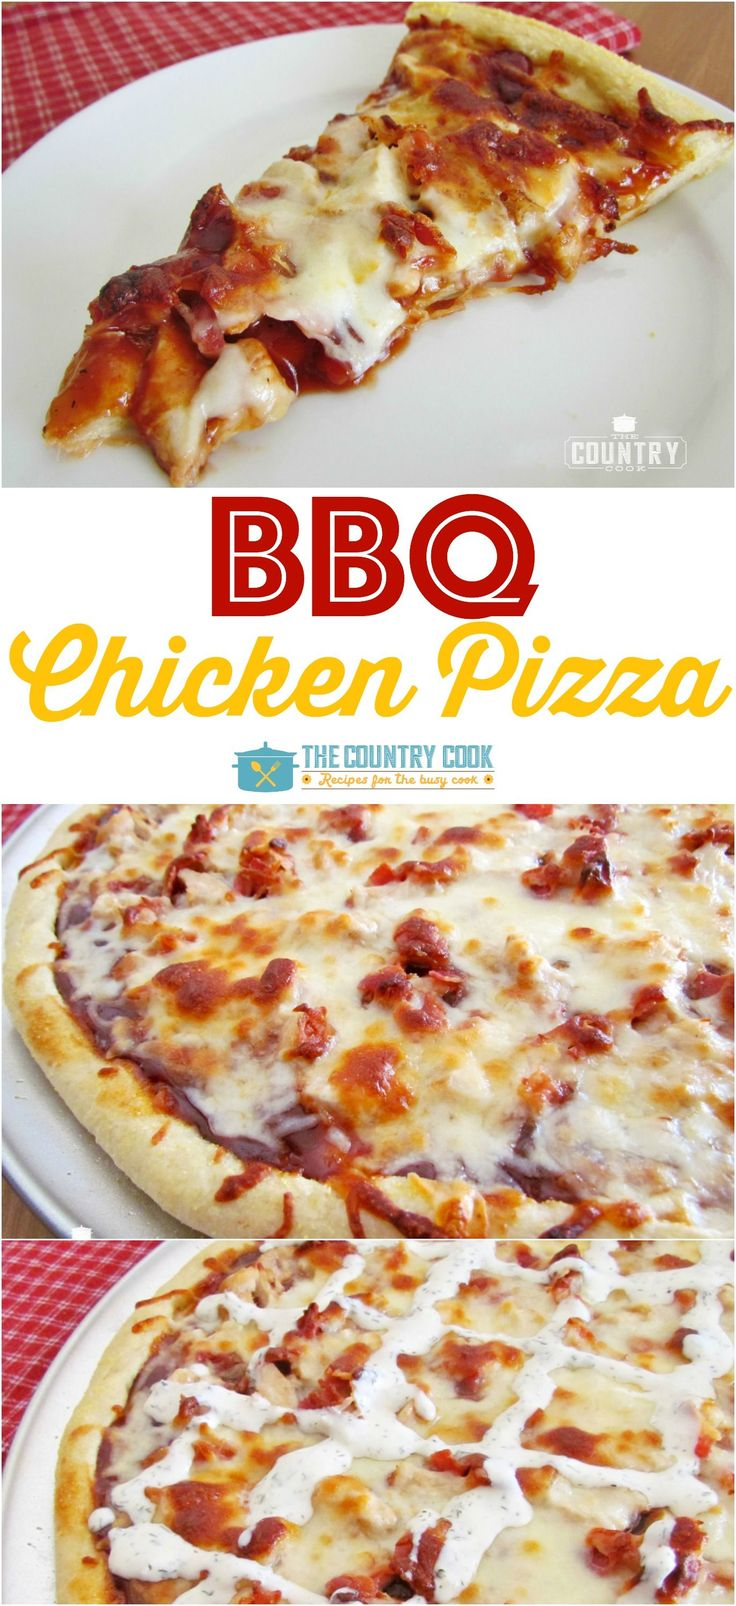 BBQ Chicken Pizza recipe from The Country Cook